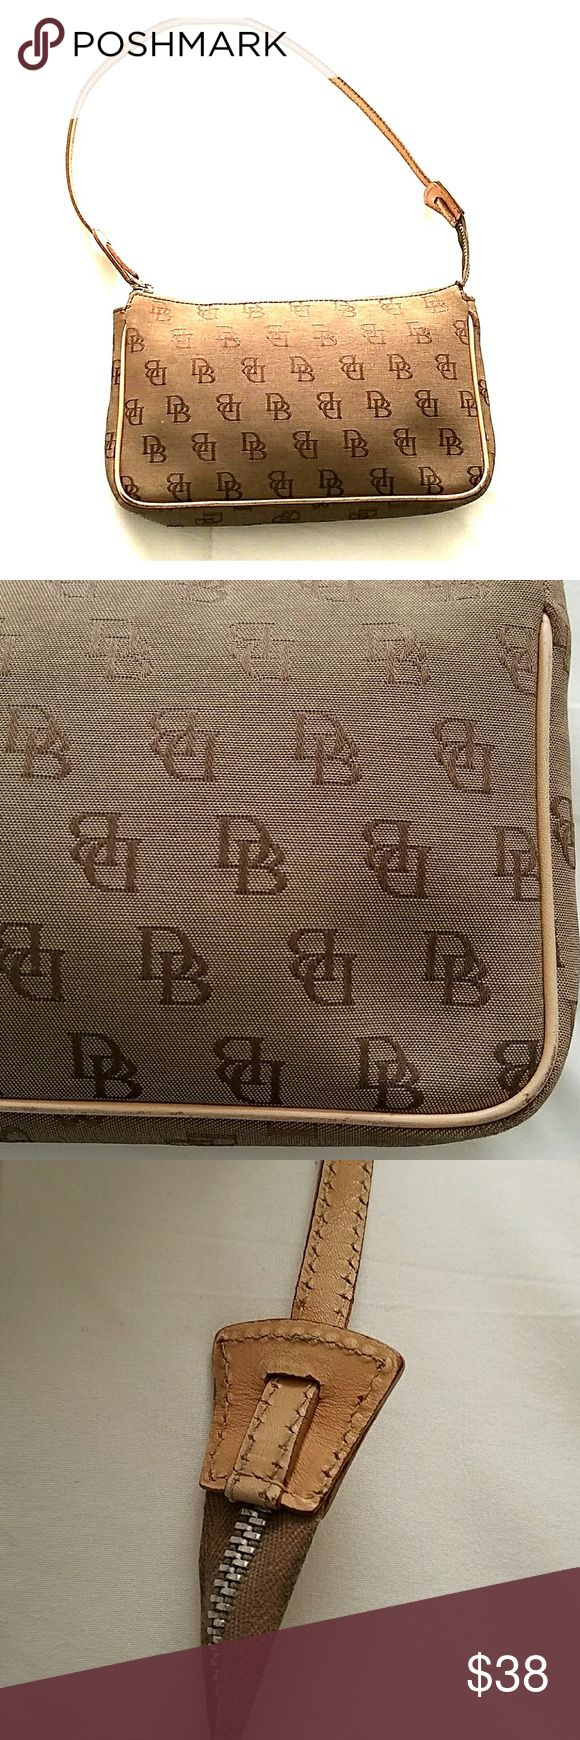 Dooney and Bourke Signature Continental Cute little bag, perfect for a night out or when you don't need to take a lot with you. In good condition, a little worn on the corner as pictured. Dooney & Bourke Bags Mini Bags